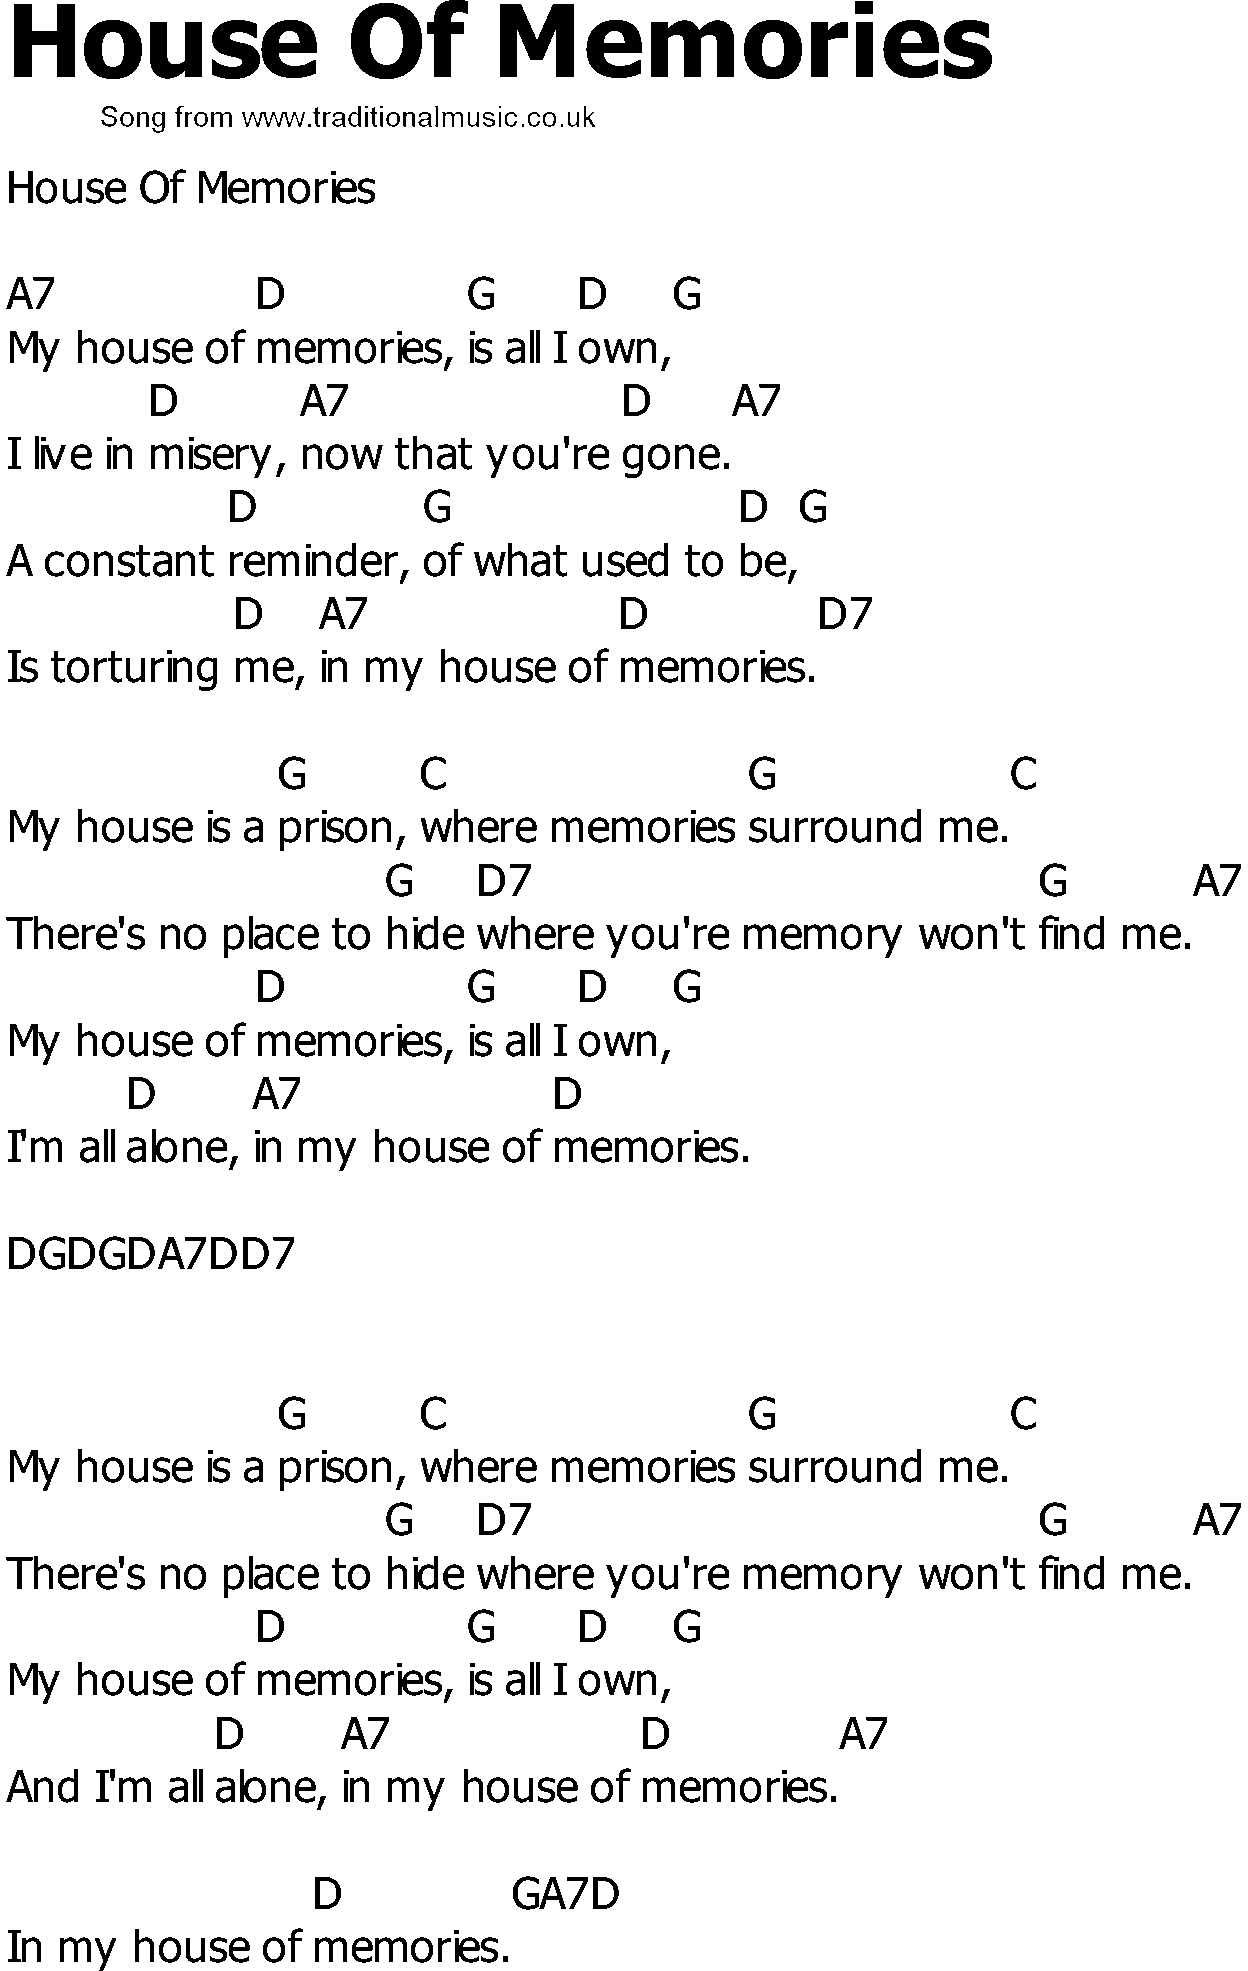 Old country song lyrics with chords house of memories for Classic house music songs